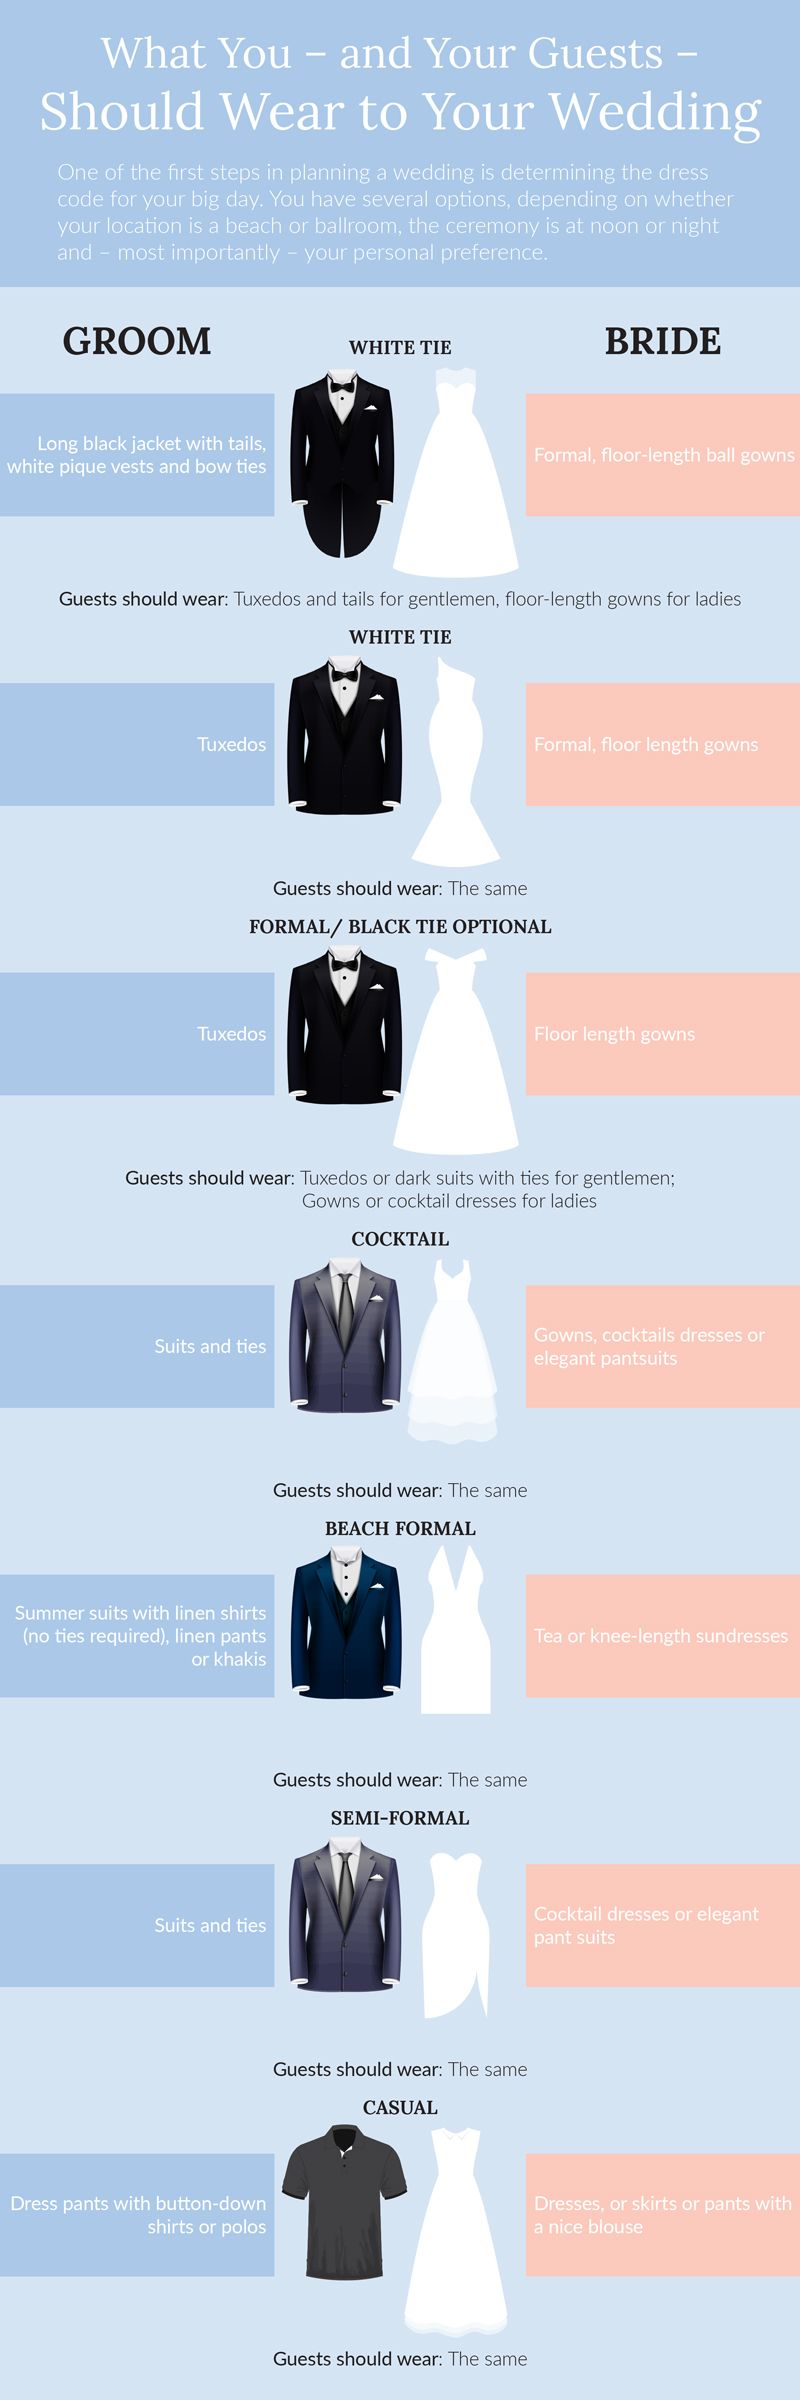 Dress Code Deciphered What You and Your Guests Should